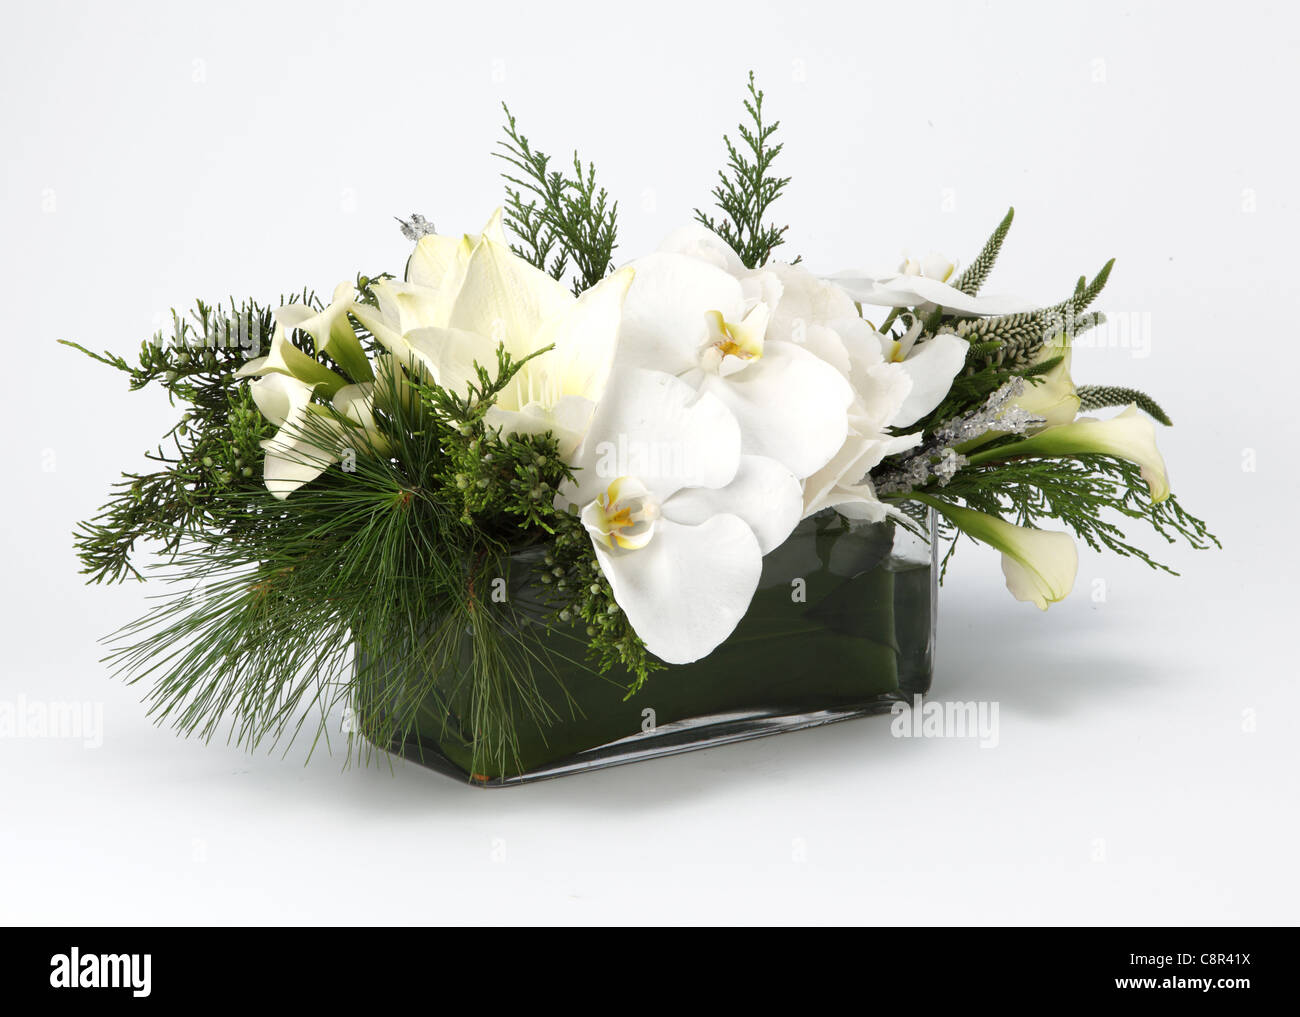 A close-up of a white bouquet of flowers in a vase. White calla lilies, white Veronica [Hebe], green juniper - Stock Image